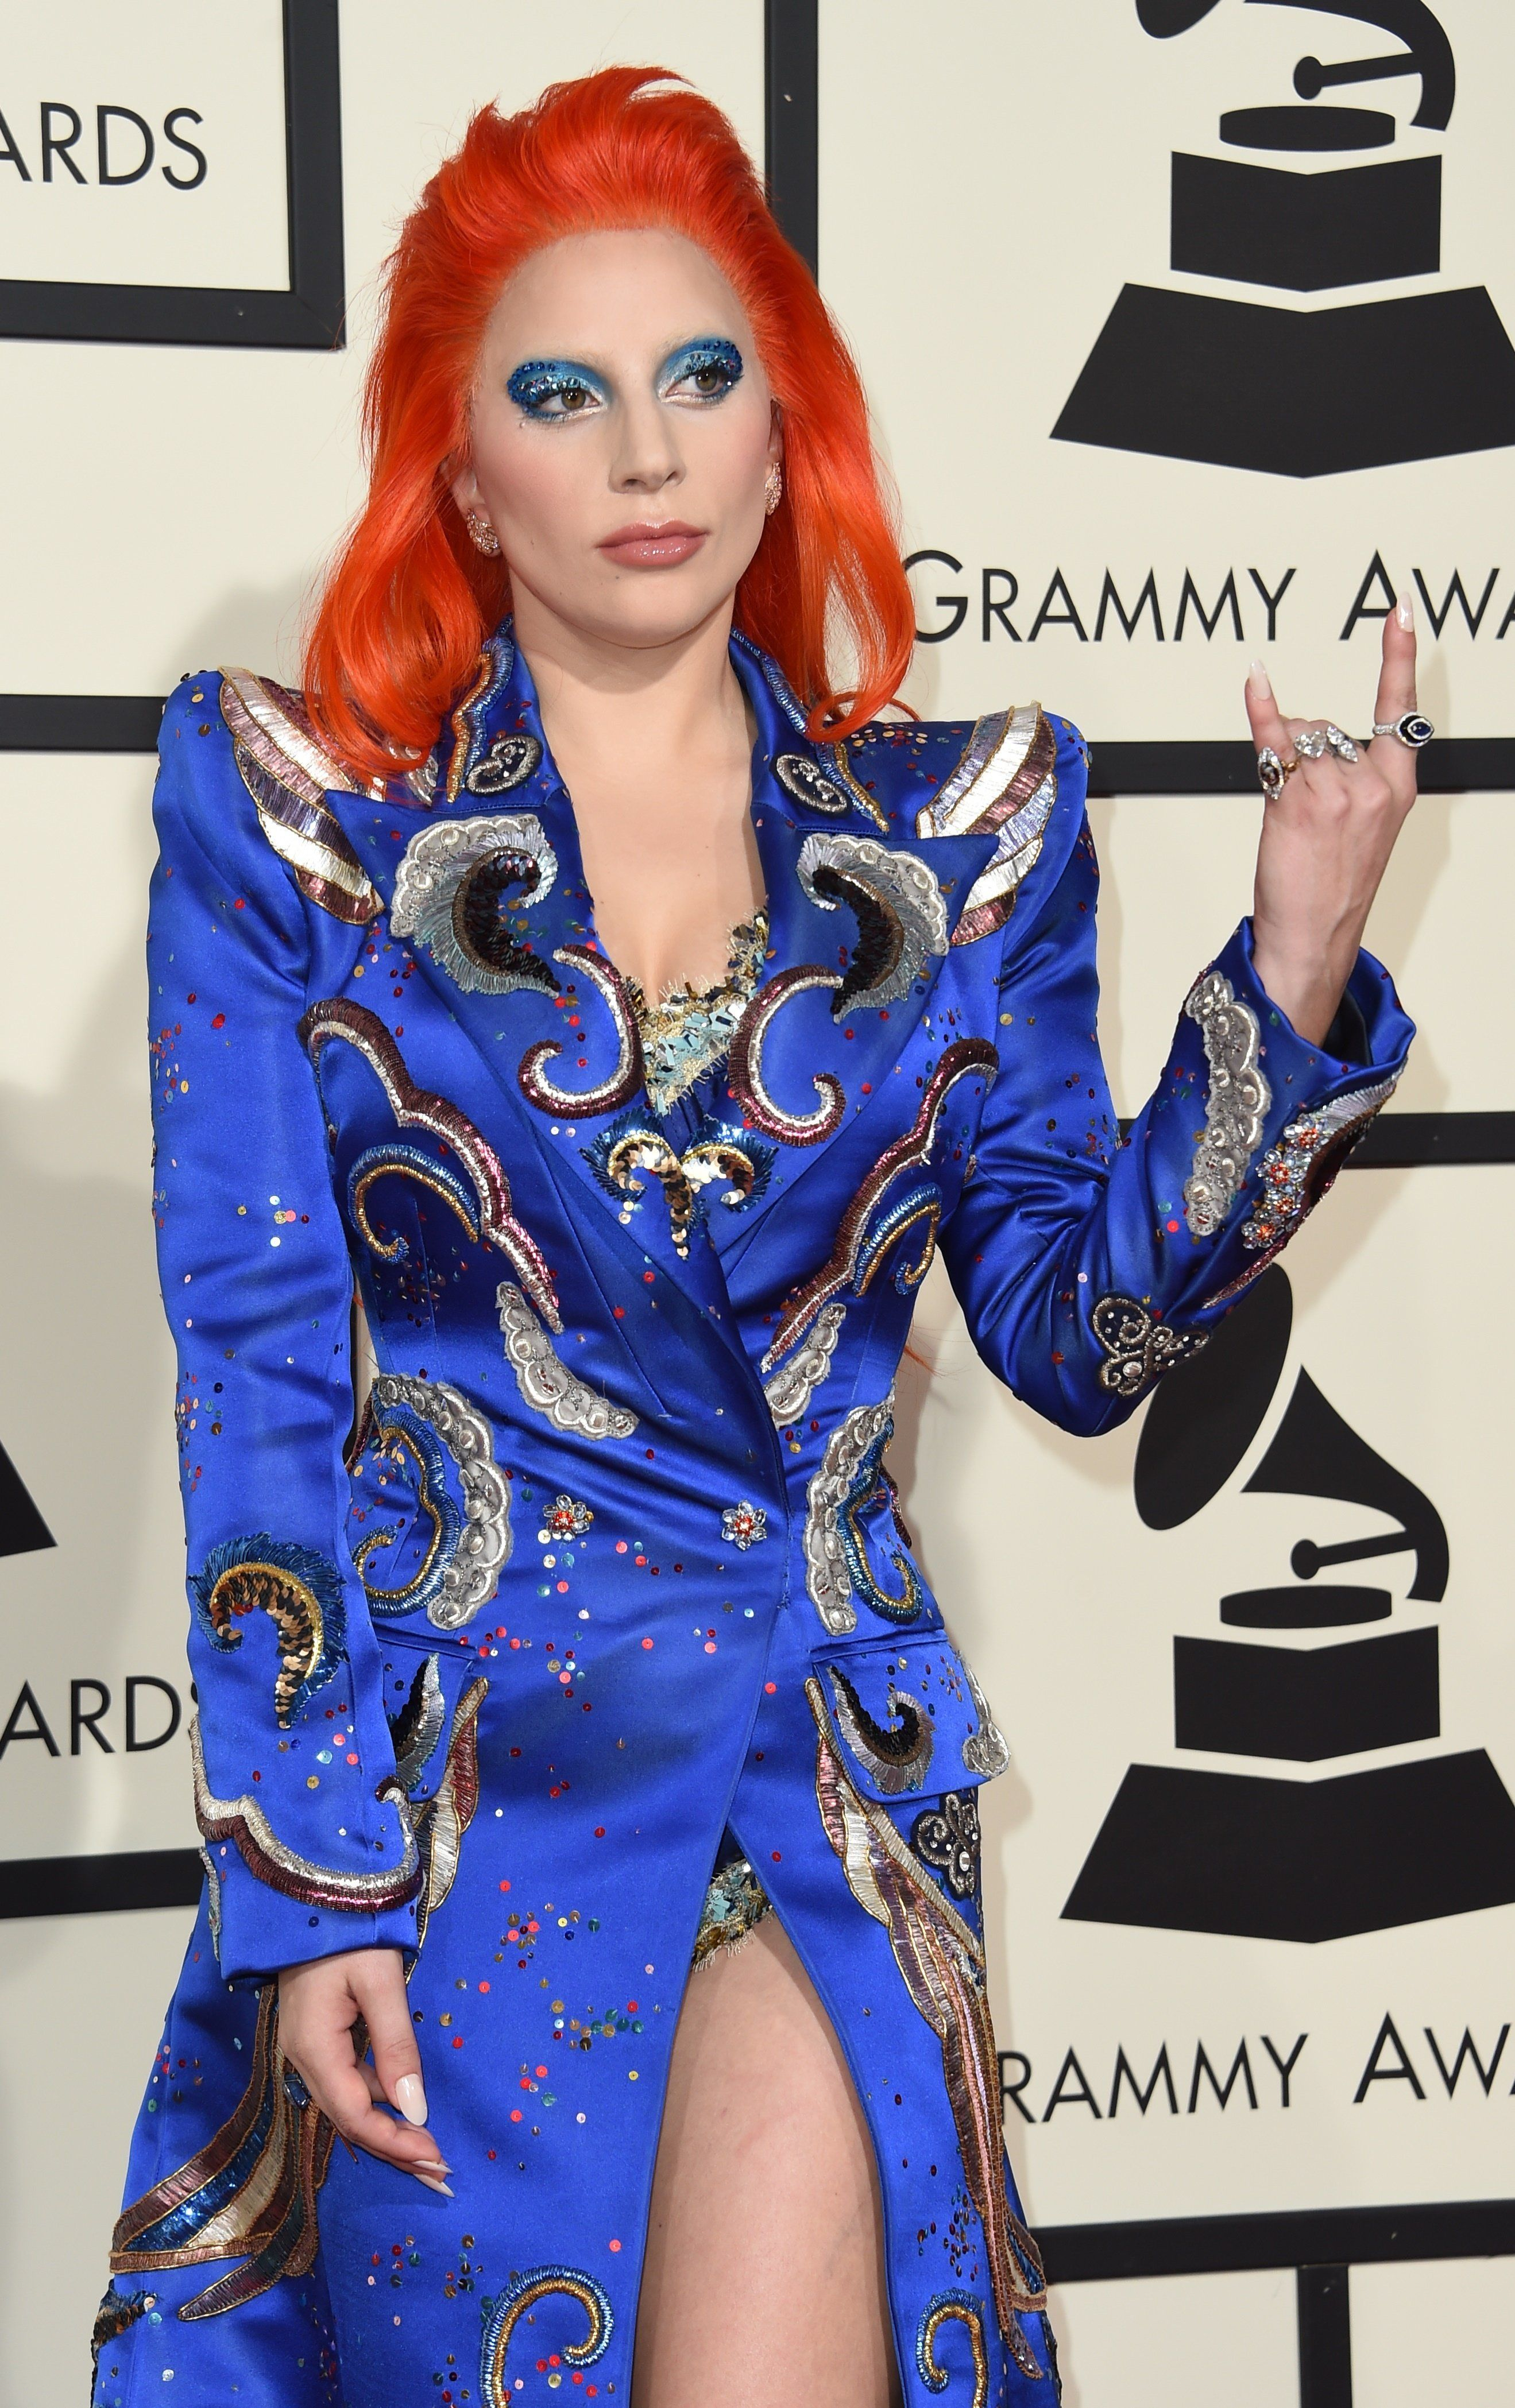 Rock on, Lady Gaga! The singer stuns at the 2016 Grammy Awards.